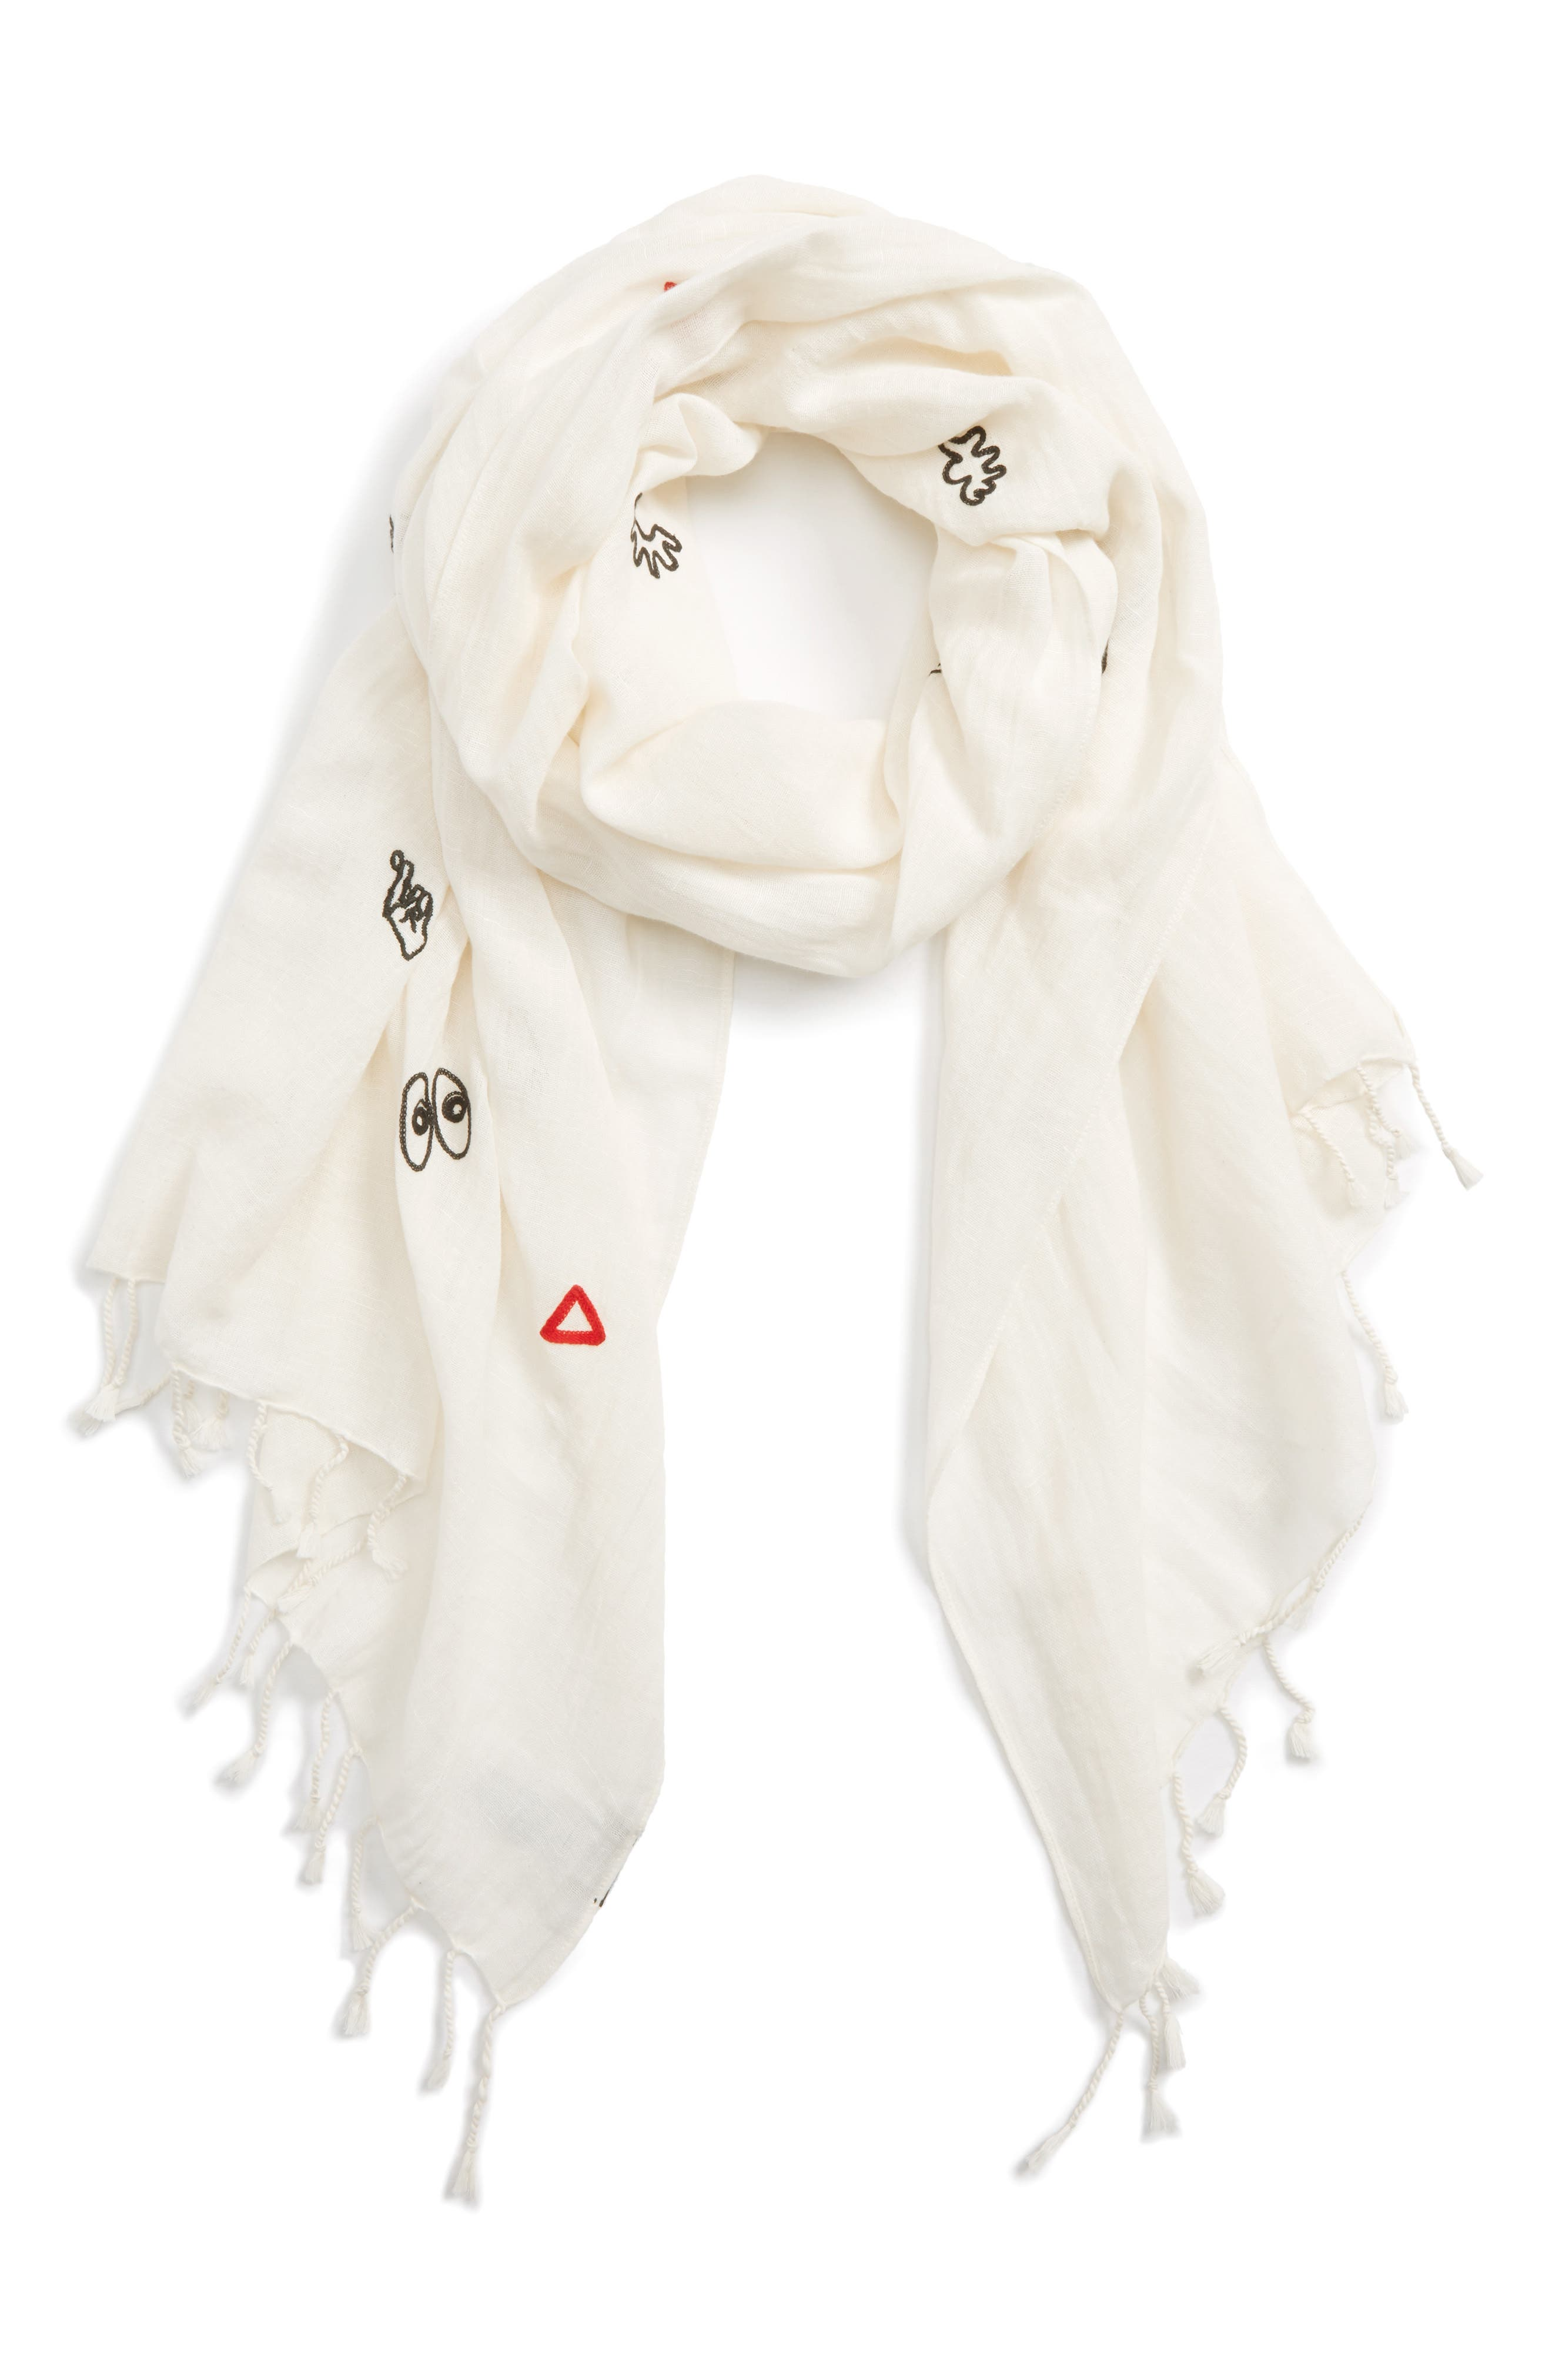 Madewell Embroidered Faces Scarf